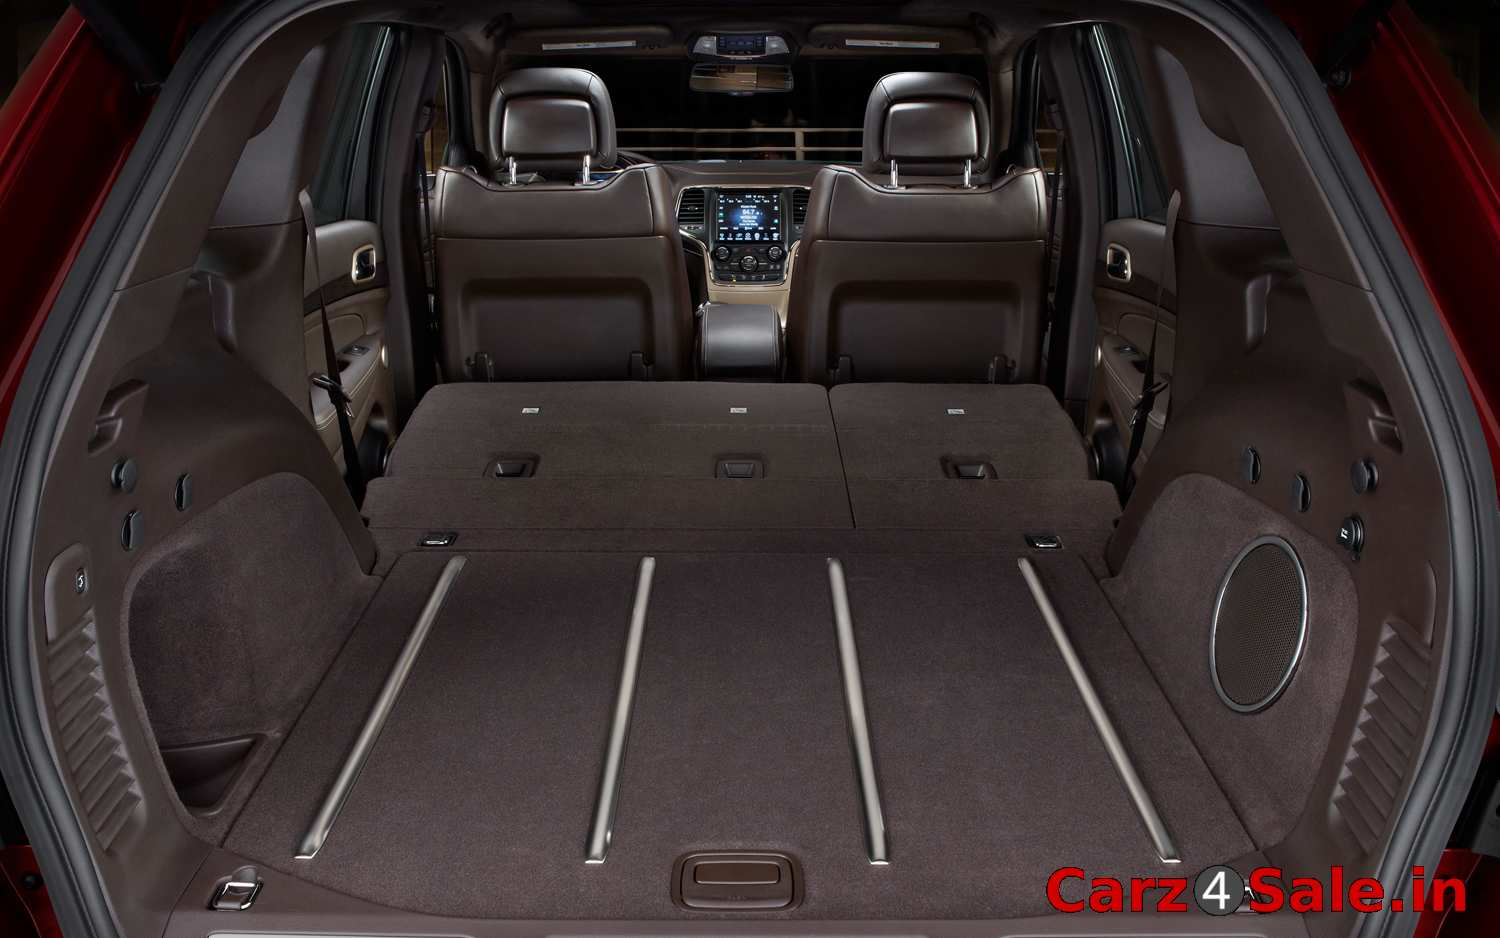 2014 Jeep Grand Cherokee bootspace